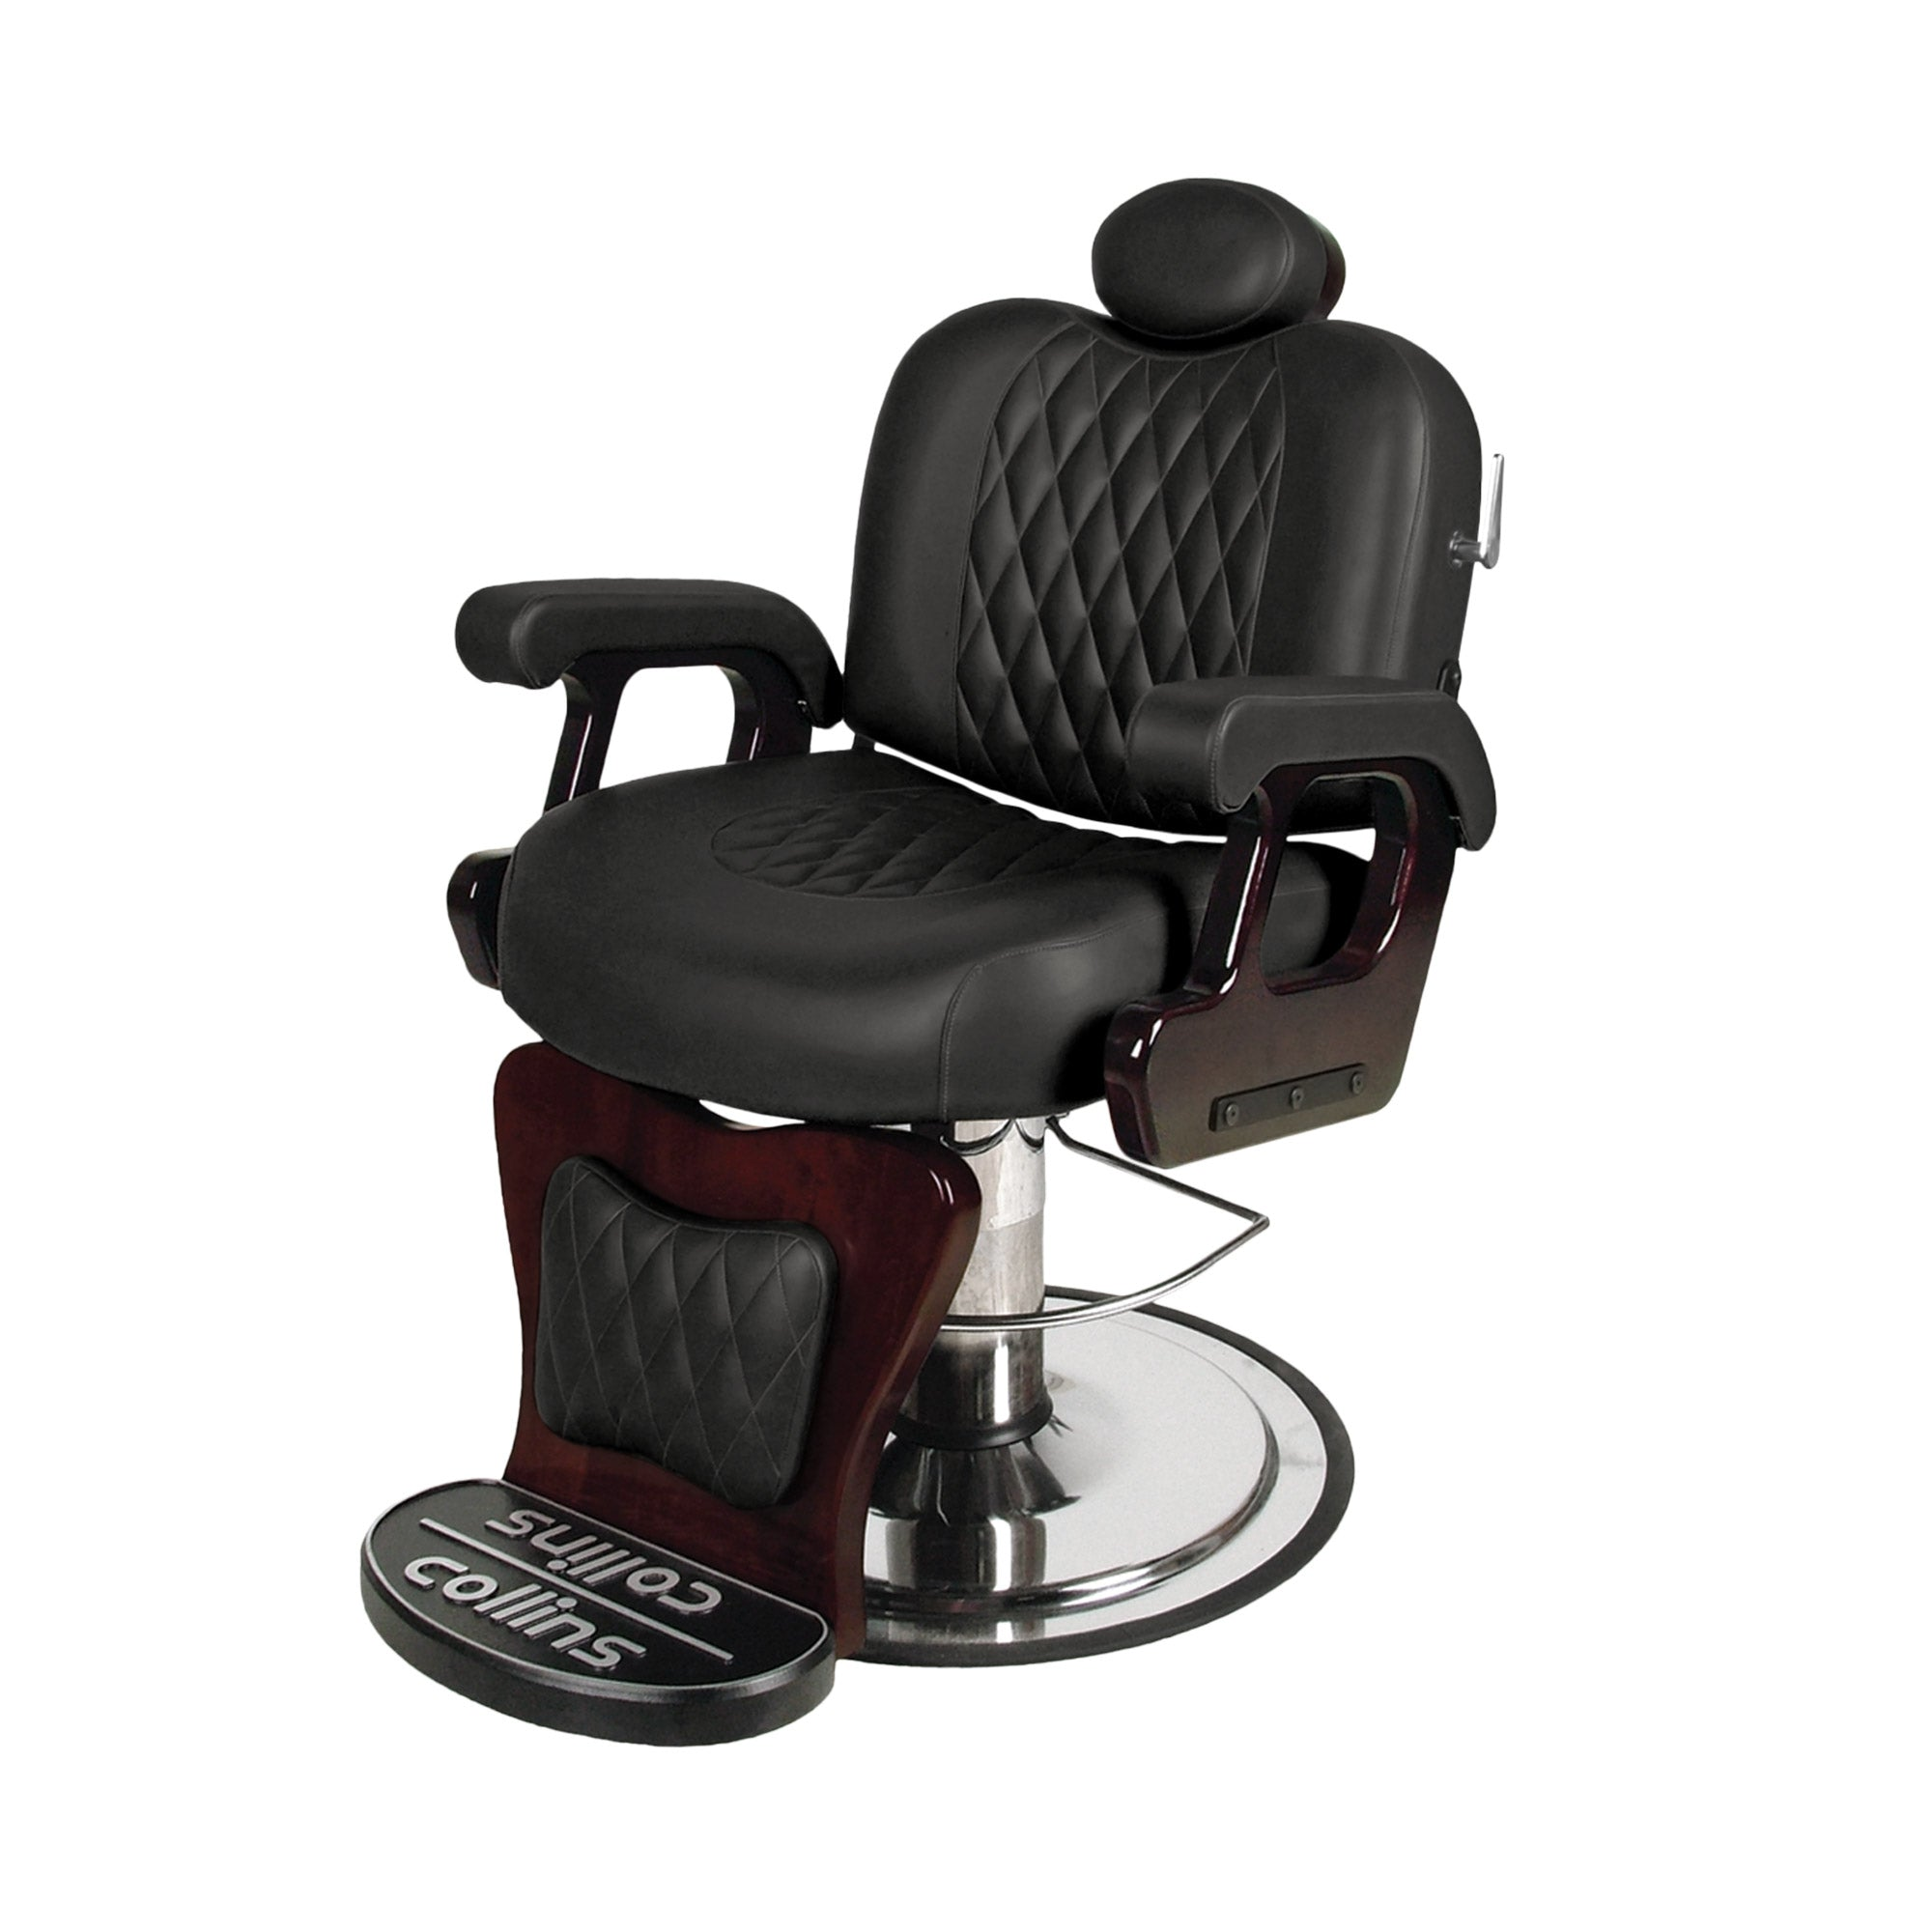 Commander II Barber Chair - Collins